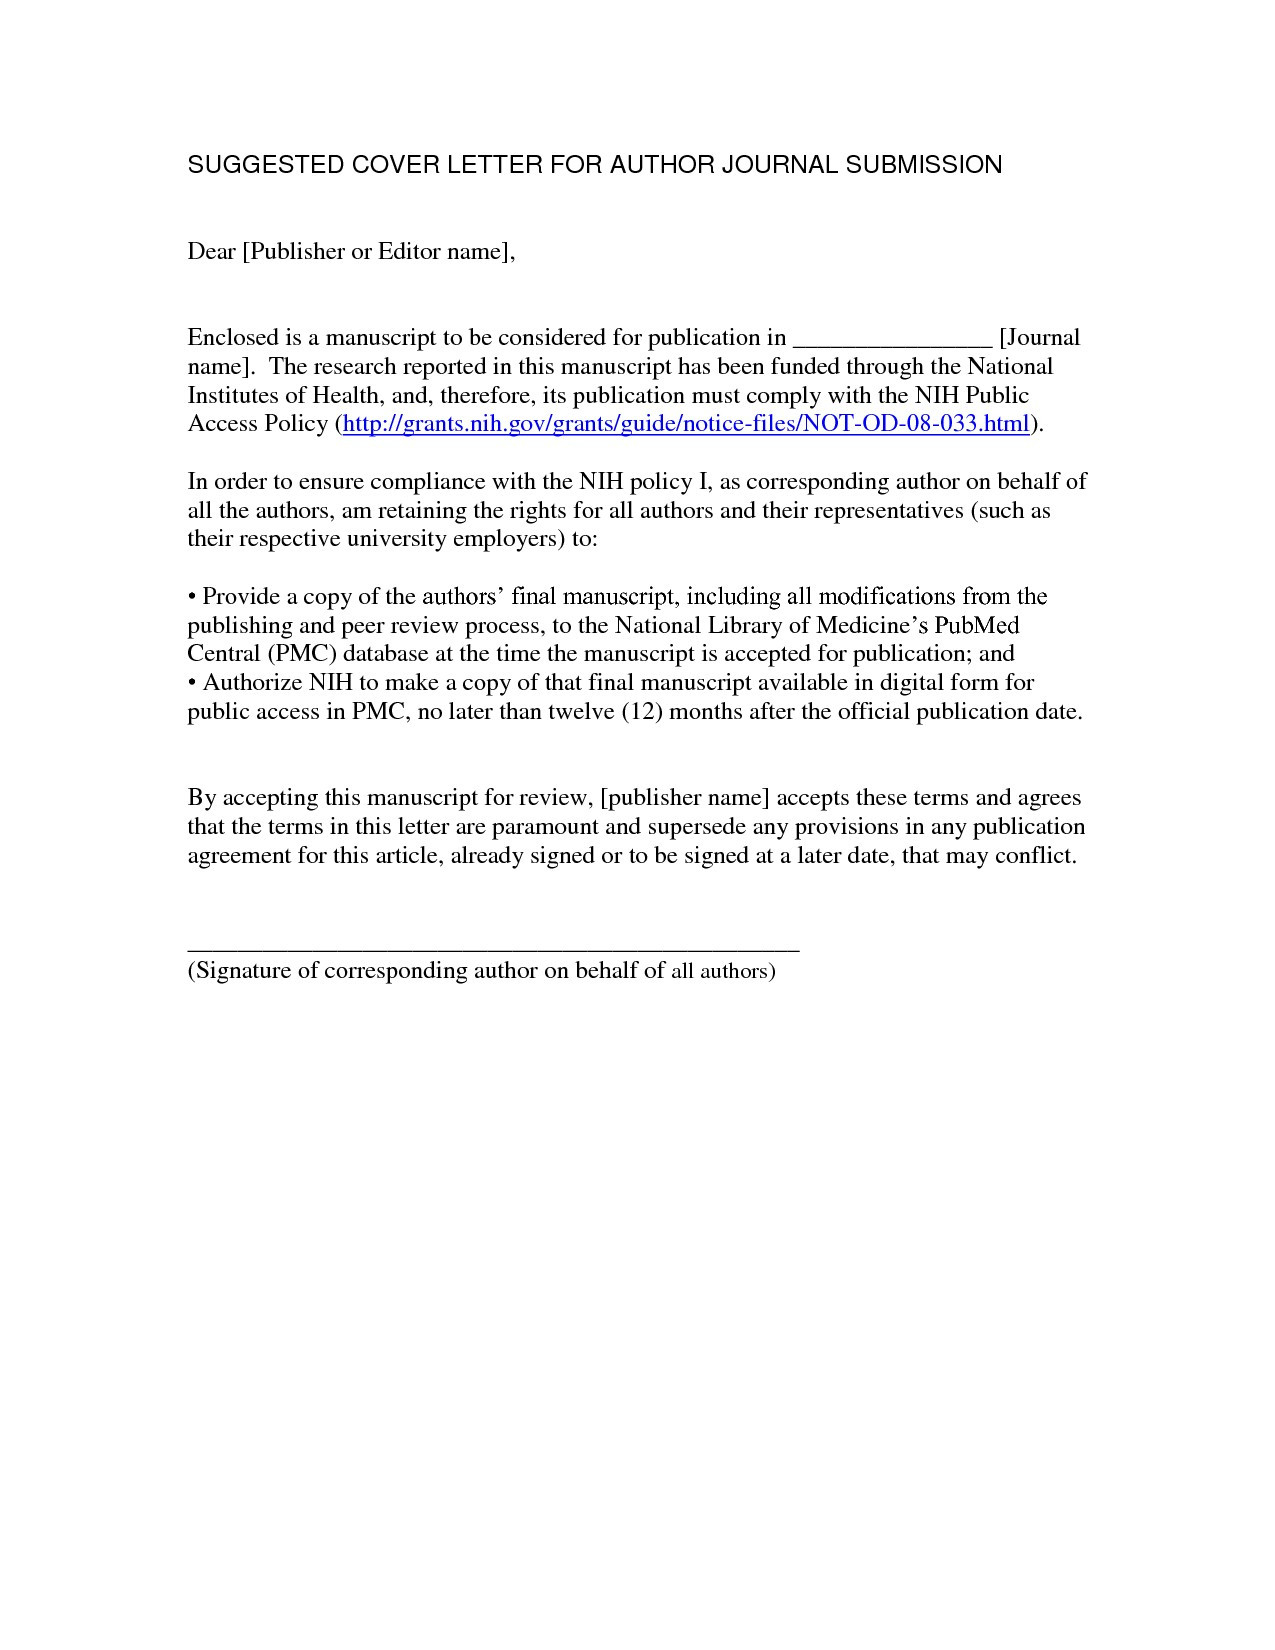 Cease and Desist Letter Breach Of Contract Template - Demand Letter Breach Contract Pdf